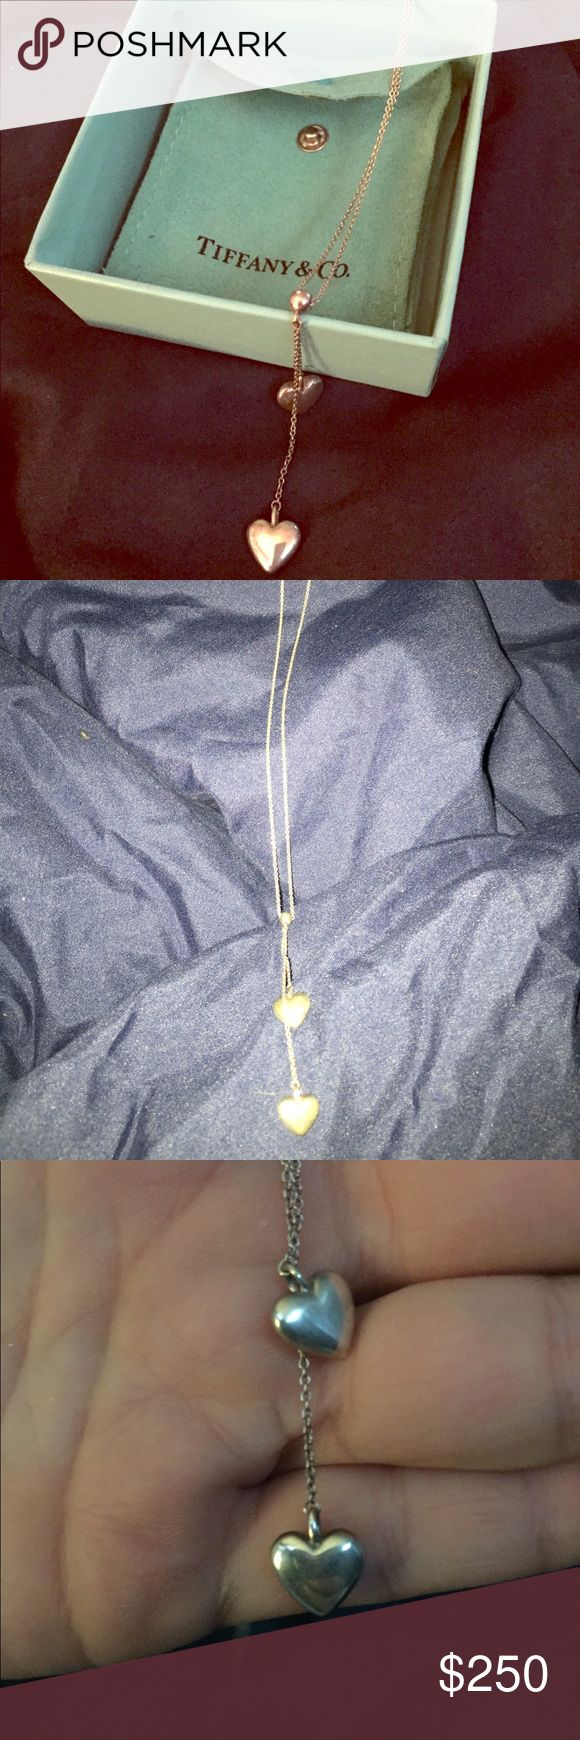 EUC Tiffany Heart Necklace💙💙💙💙 This beautiful silver necklace has two dropped hearts and hangs beautifully around your neck, hitting the perfect spot on your chest. Tiffany & Co. Jewelry Necklaces